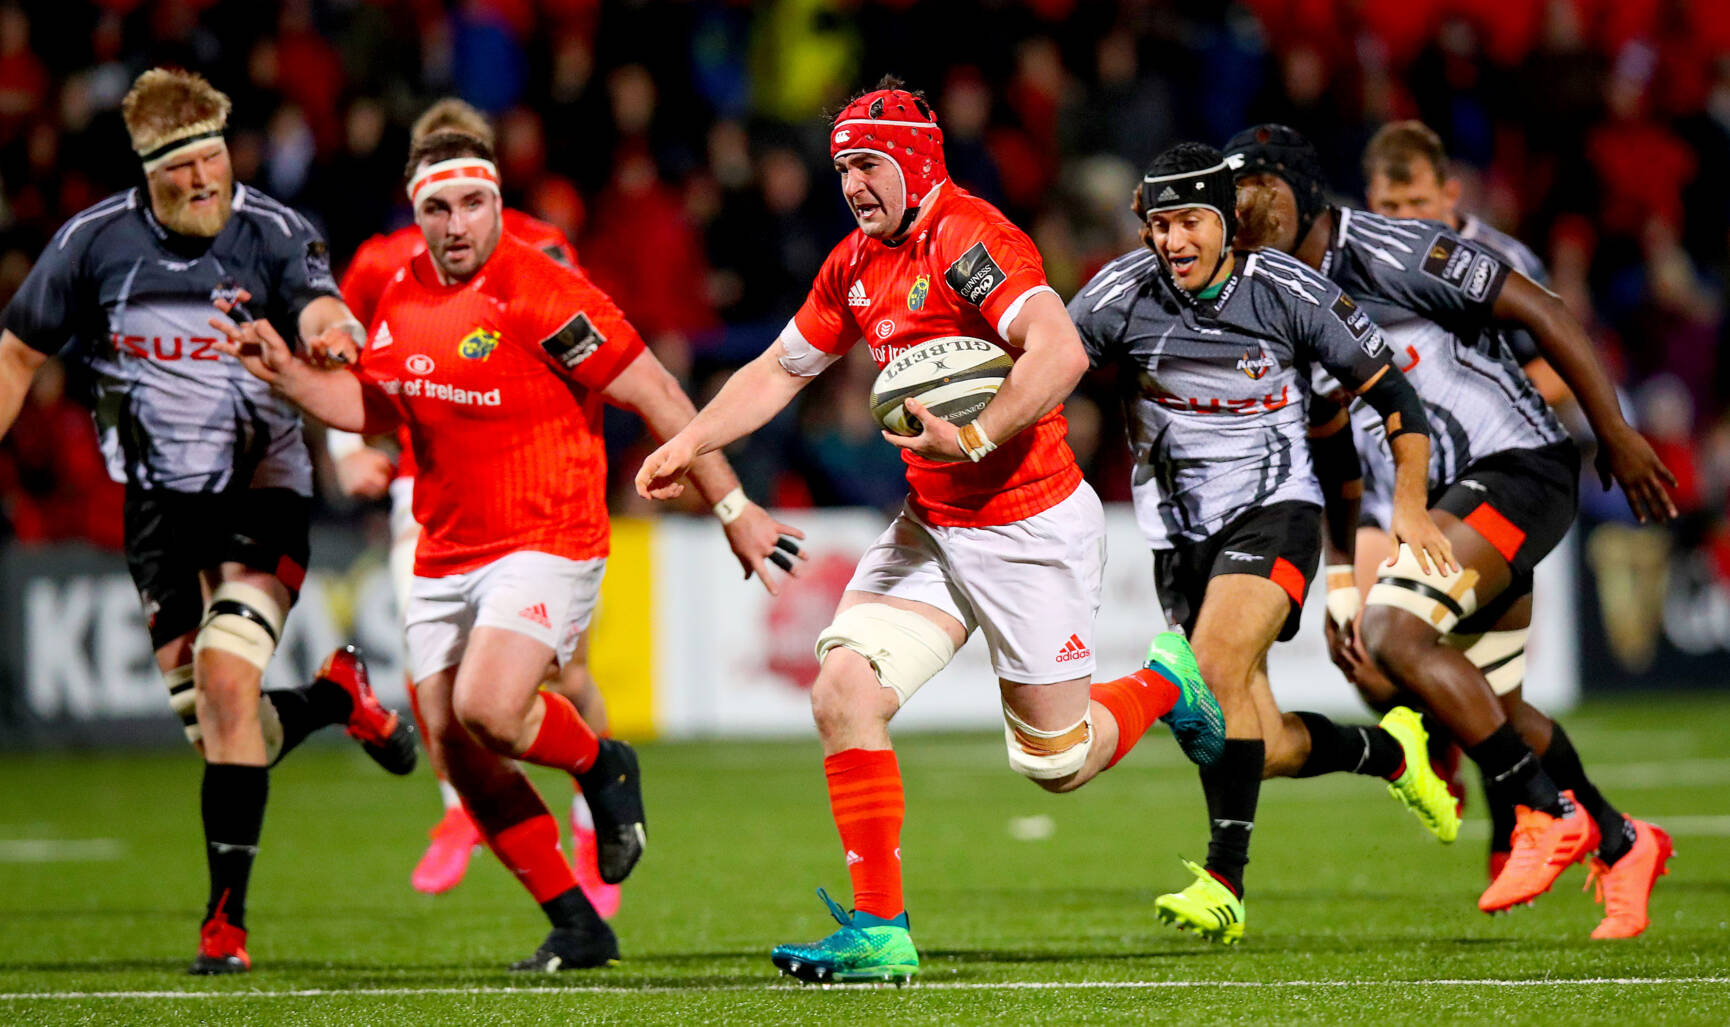 Hodnett Helps Himself To Debut Try In Record Munster Win